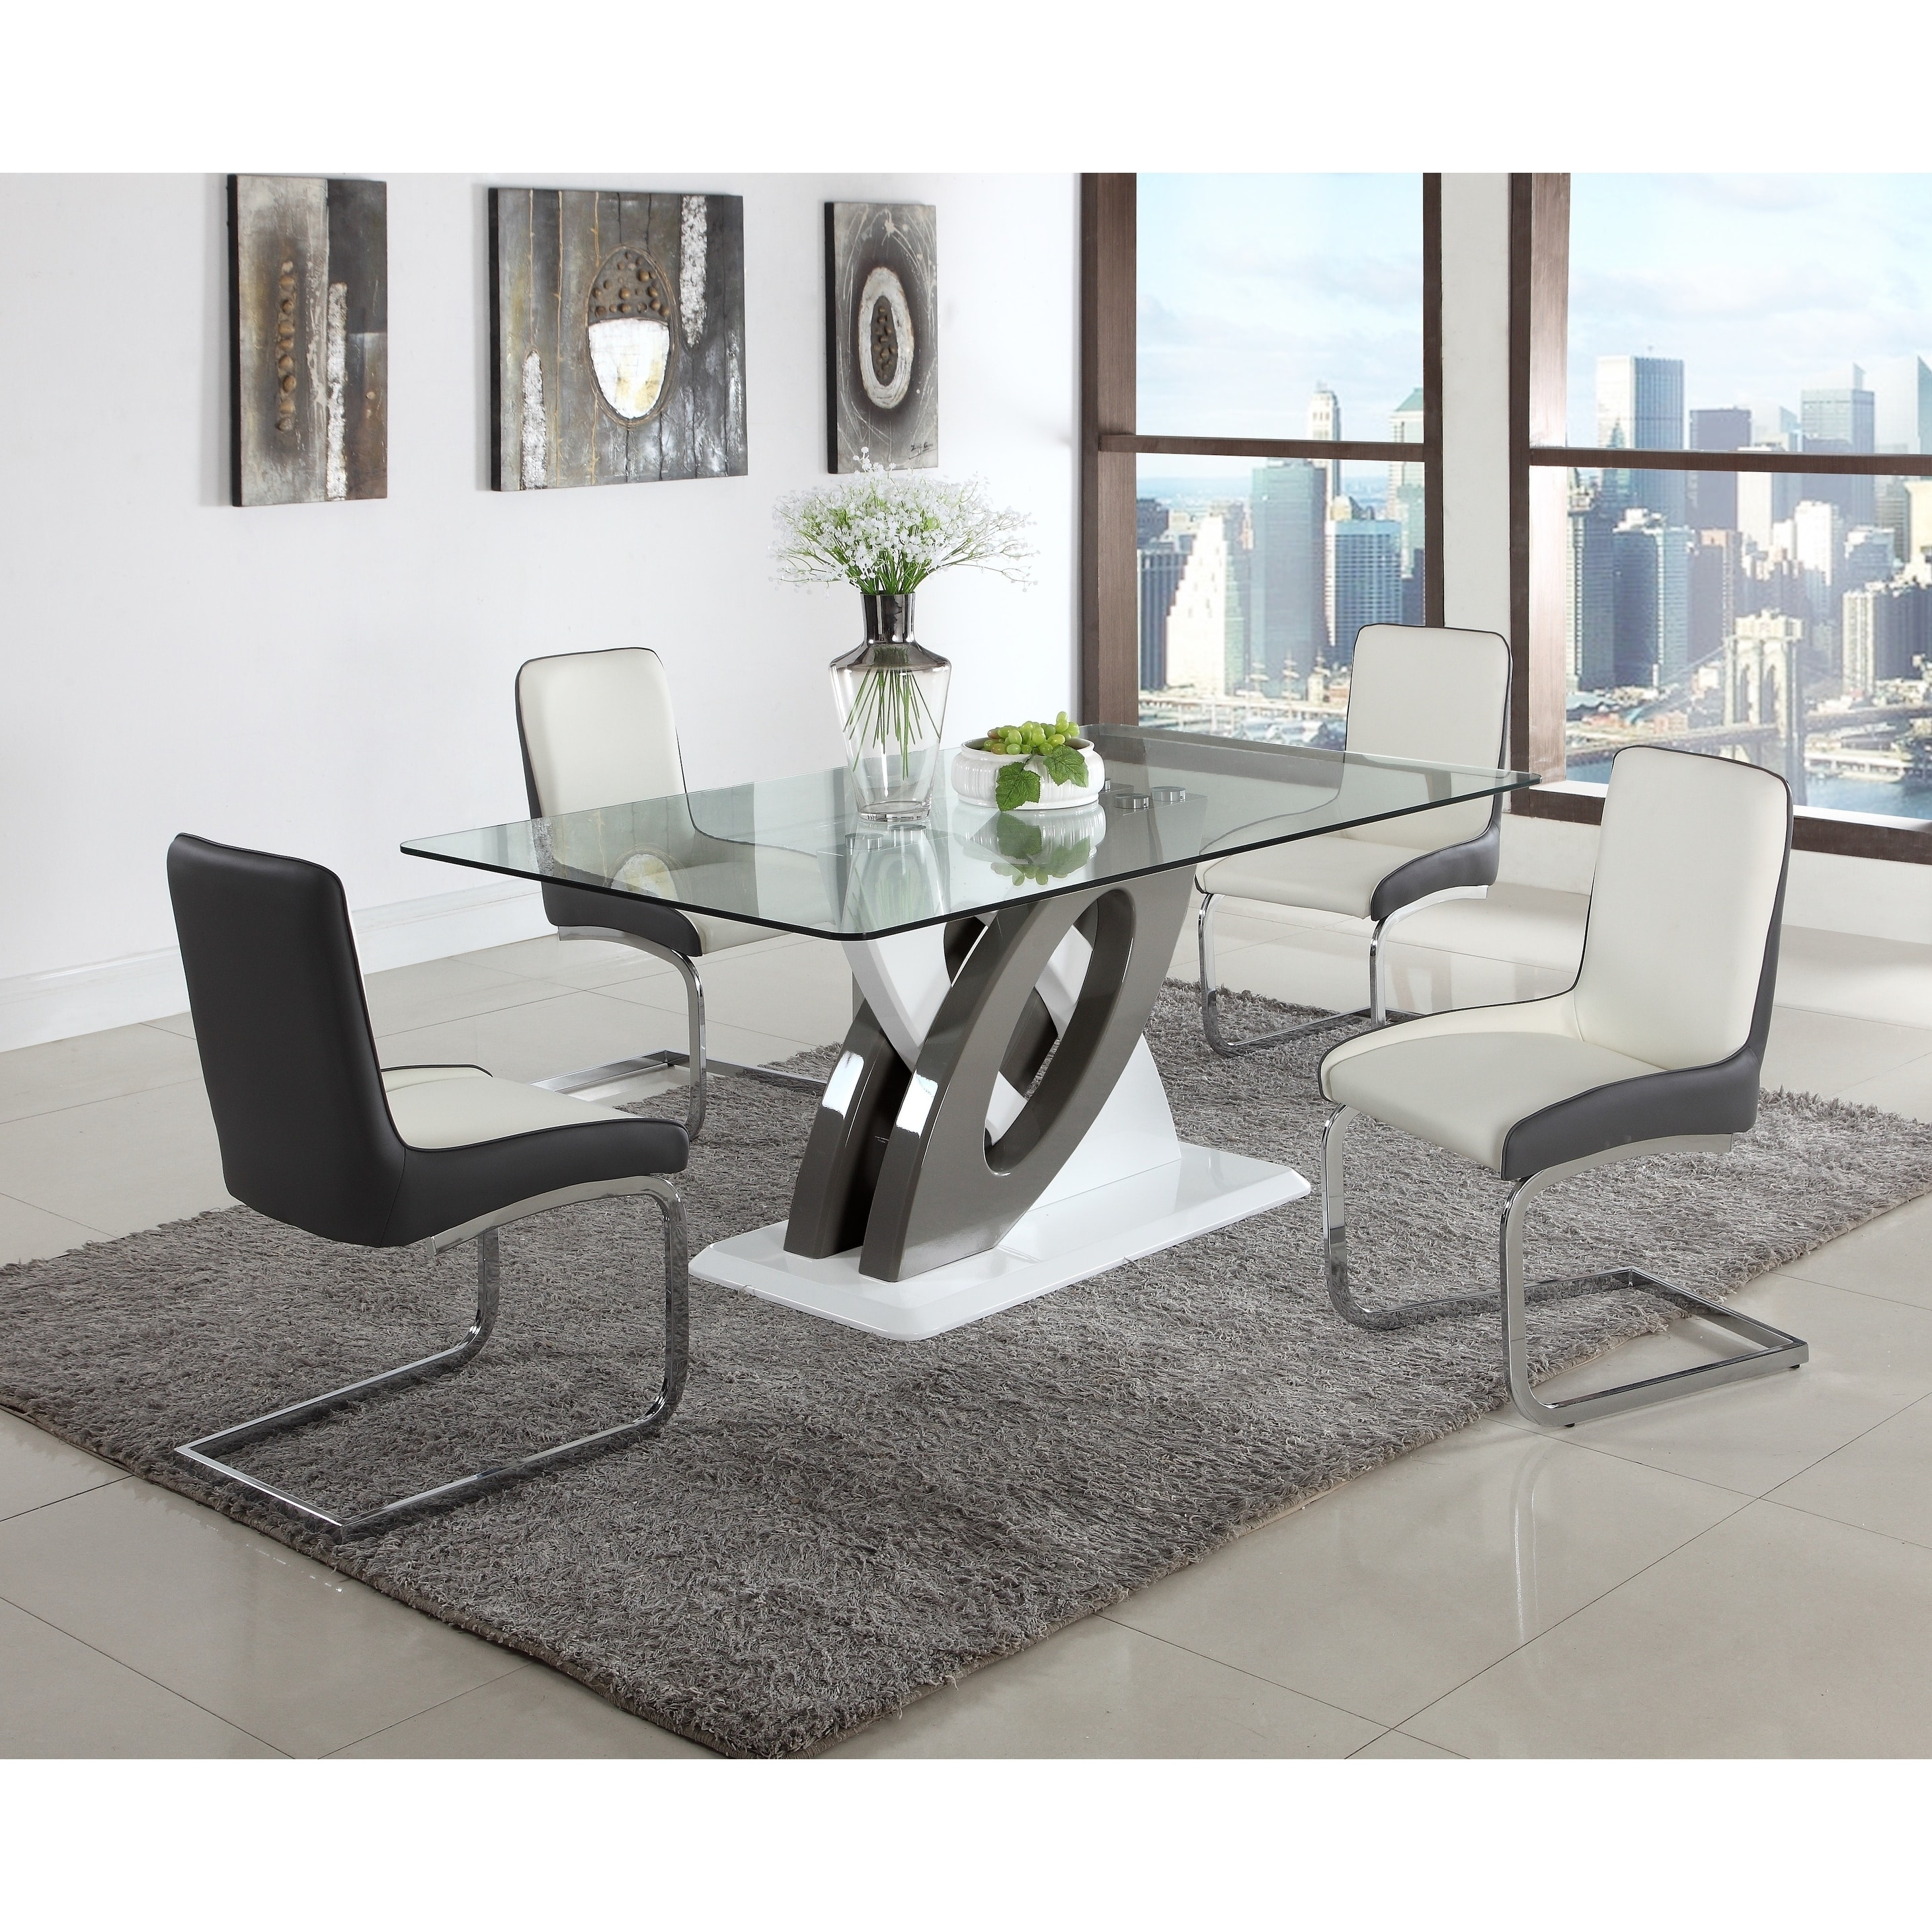 Somette Sophie Gl Top Dining Table Grey White